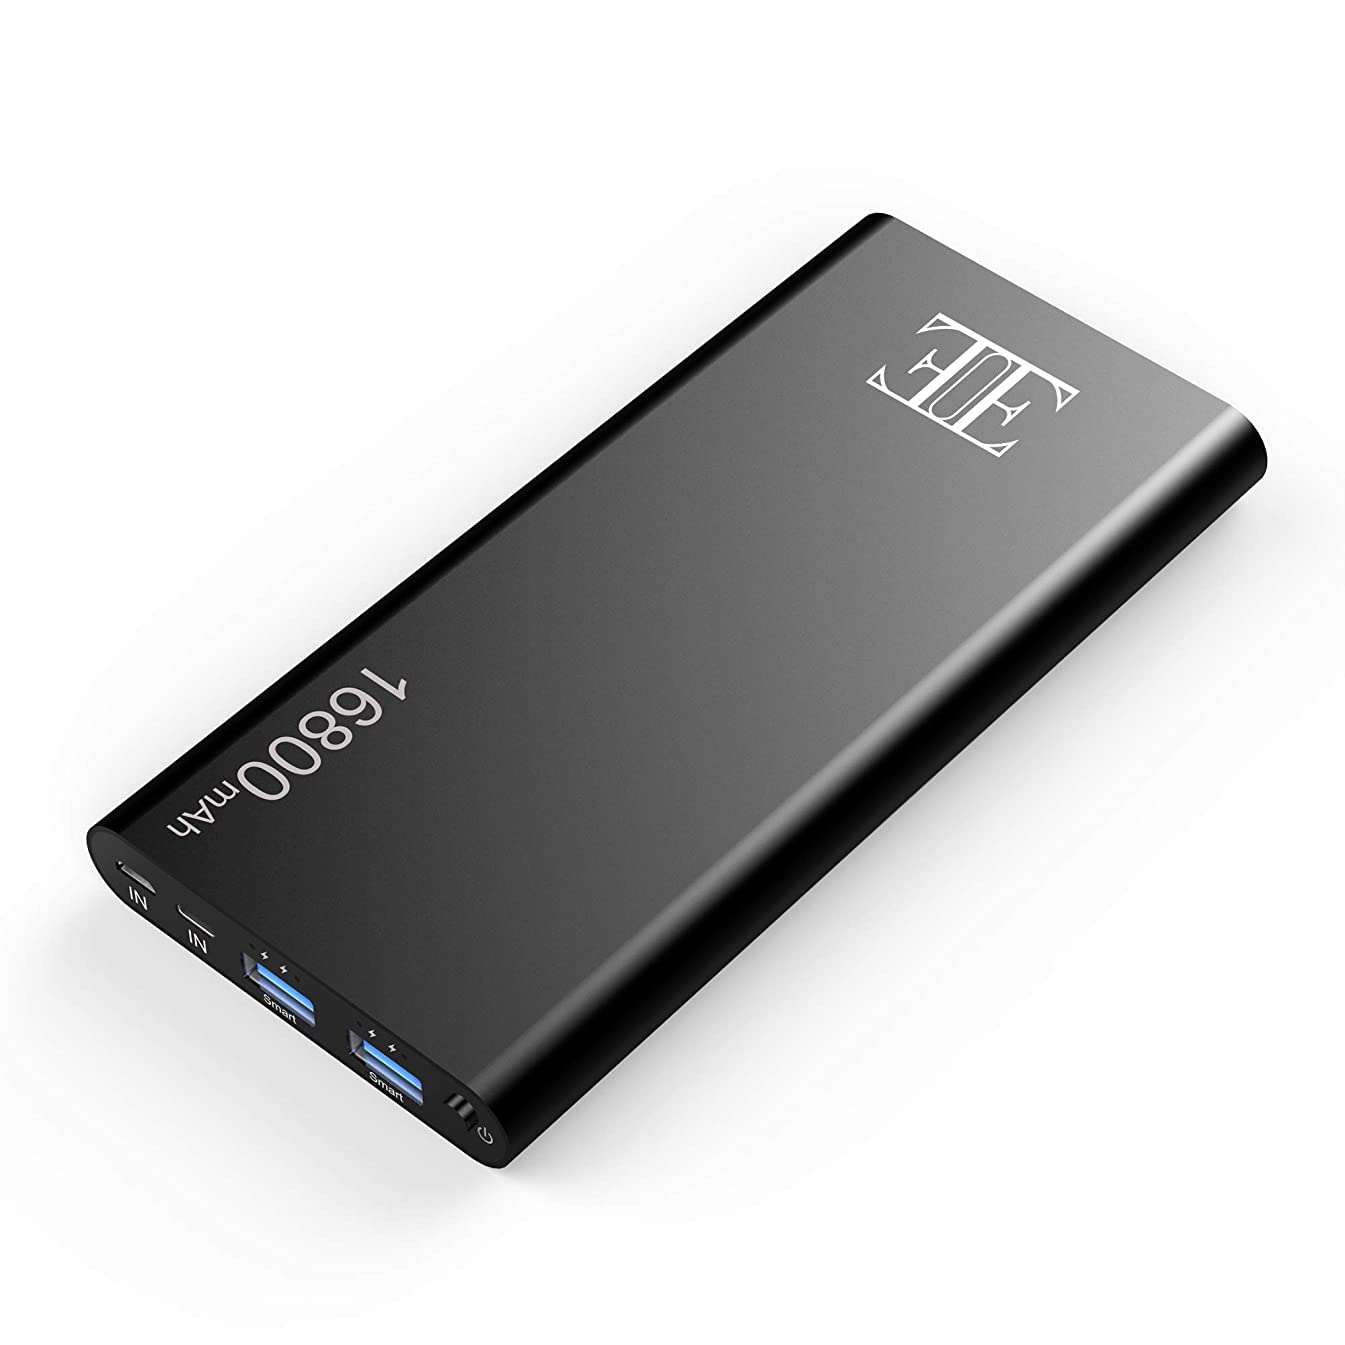 Eui 16800mAh External Battery,2 USB Outputs Portable Charger Power Bank with Type C Input,Aluminum Shell, Intelligent Charging Tech for iPhone, iPad and Android Devices. (Black)